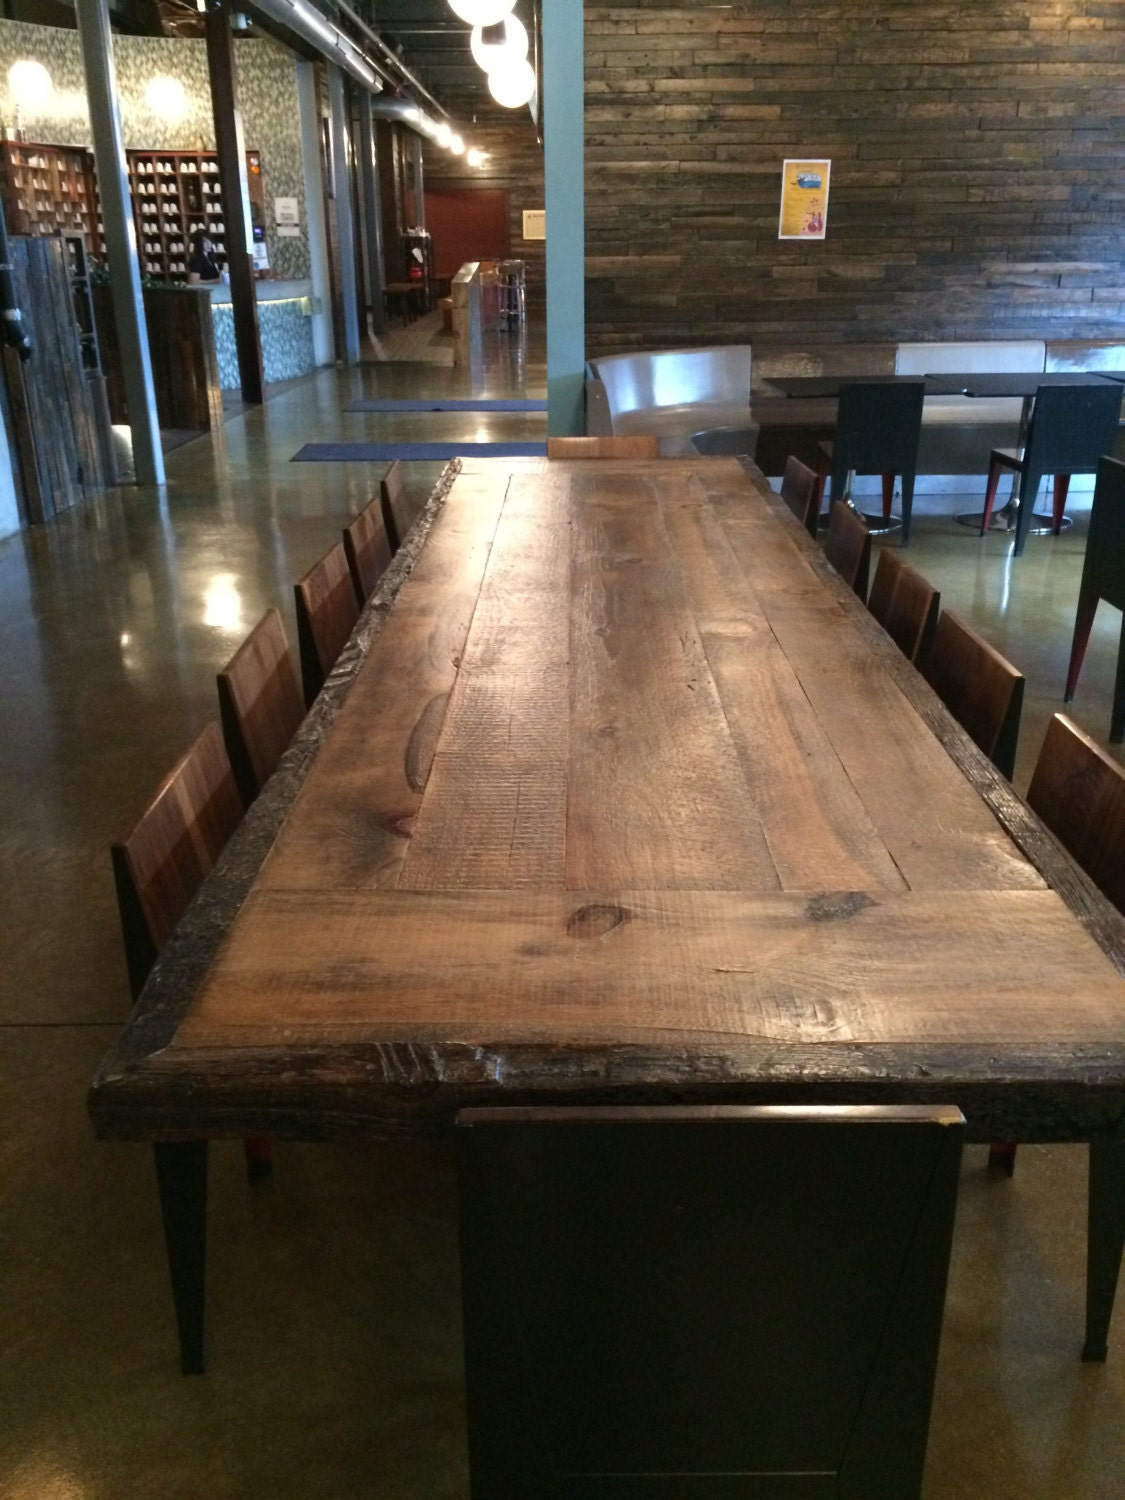 ... Reclaimed wood dining table 12 foot Conference table top. 🔎zoom - Reclaimed Wood Dining Table 12 Foot Conference Table Top